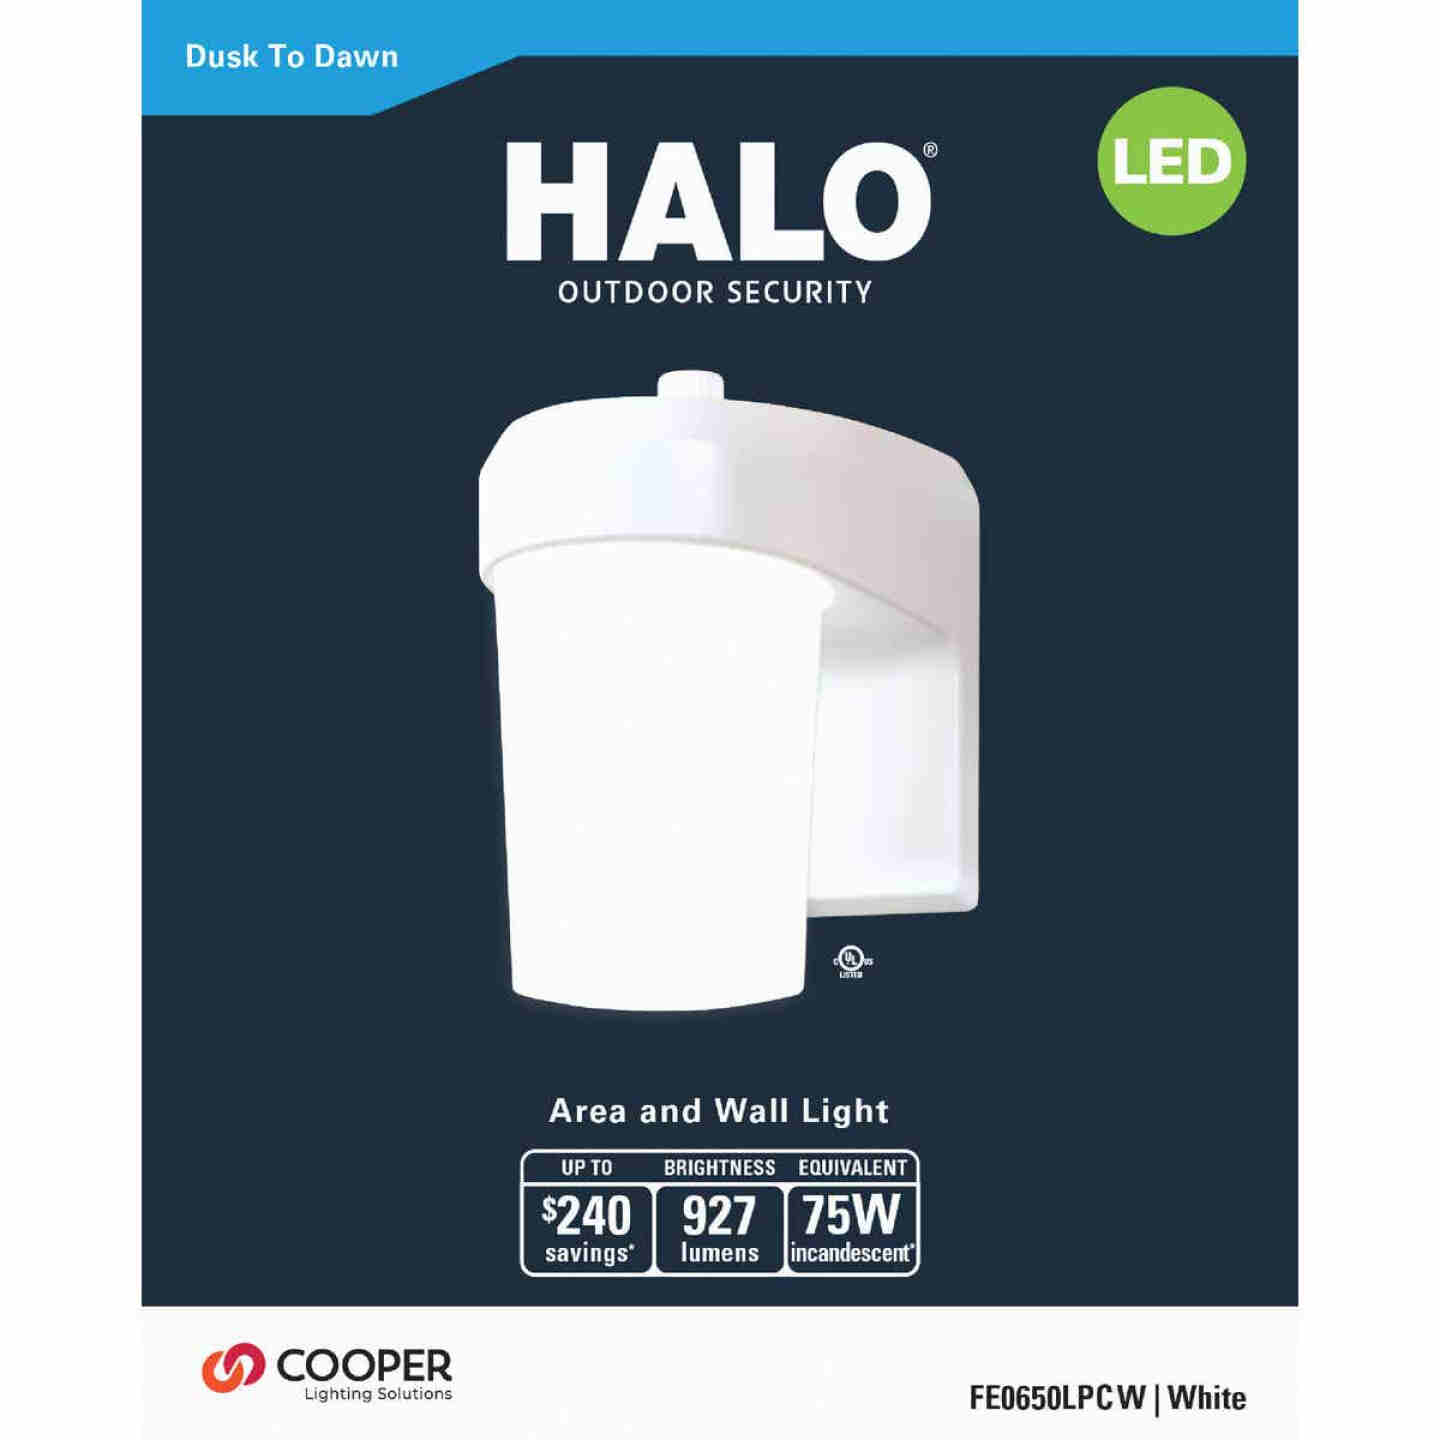 Halo White Dusk To Dawn LED Outdoor Area Light Fixture Image 2